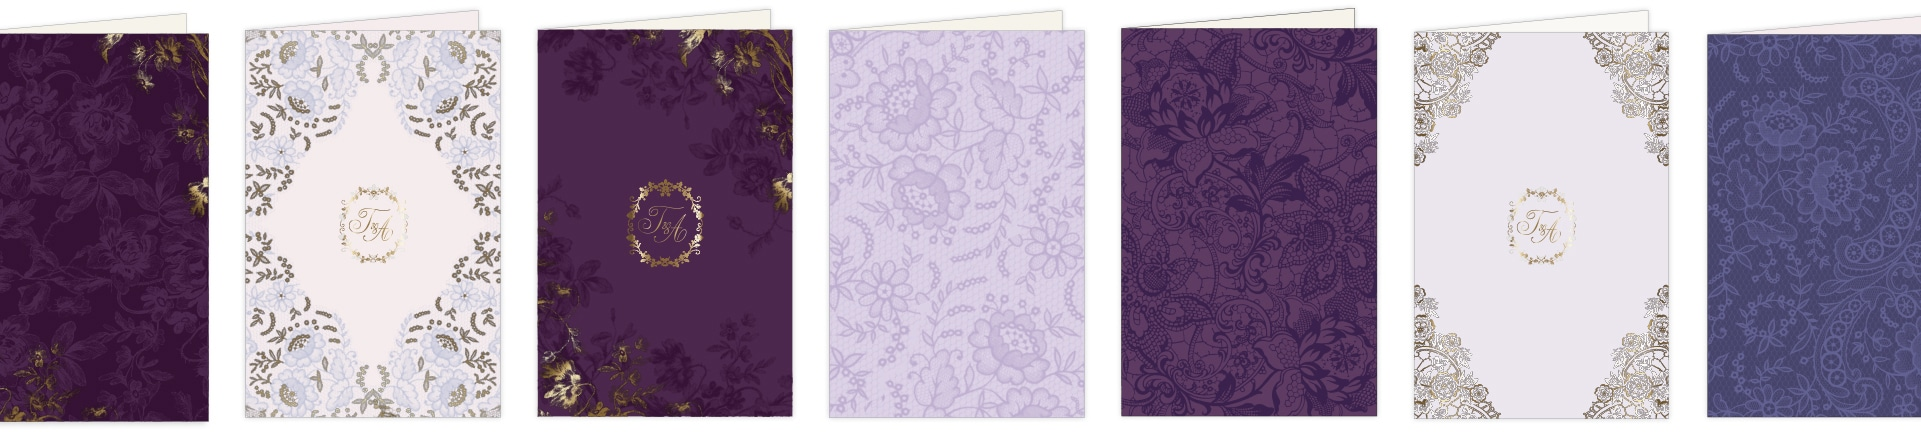 Purple lace and floral folders